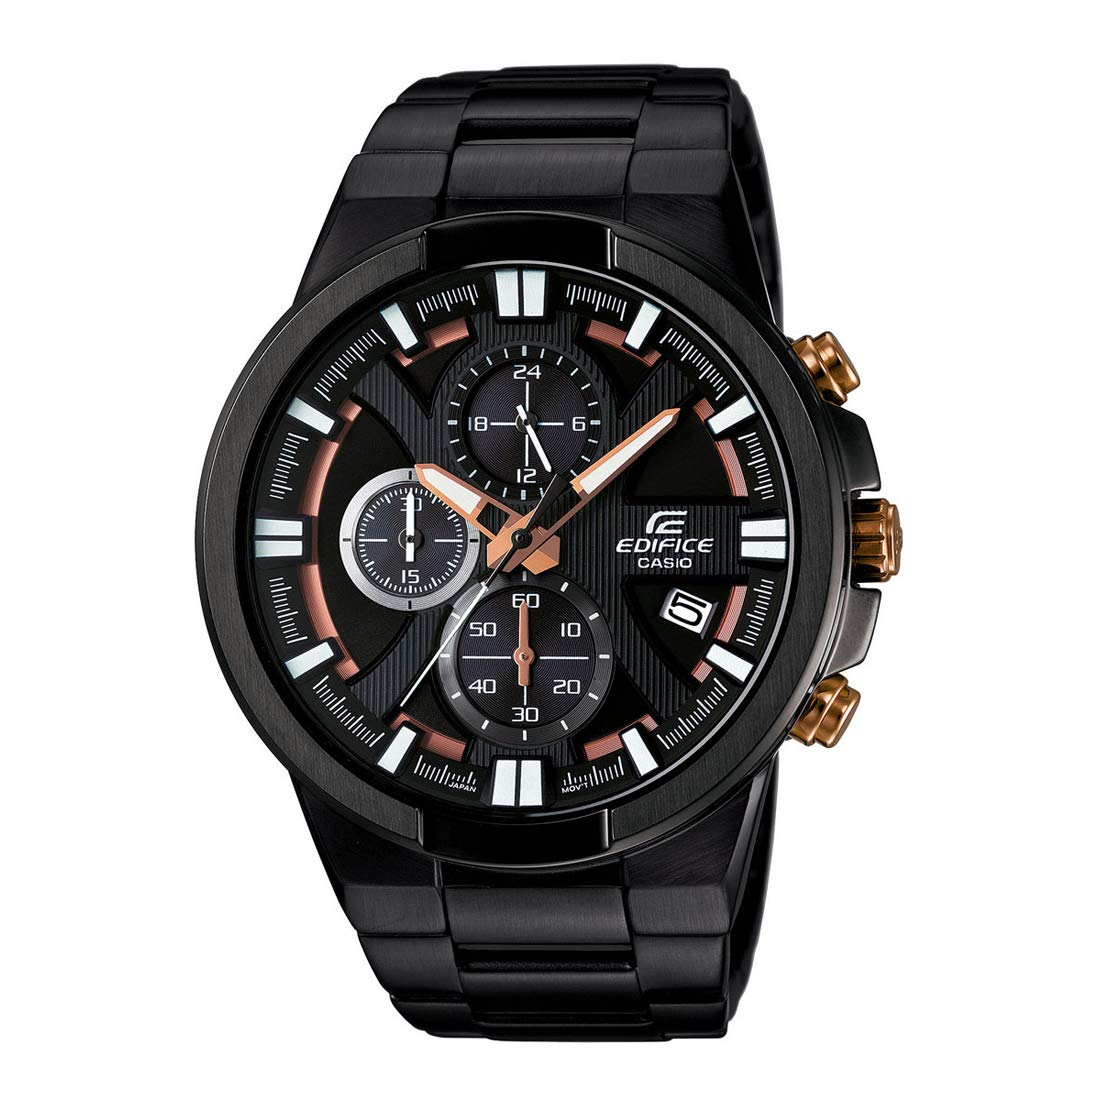 Top 15 Best Watches Under 15000 Rupees In India 2021